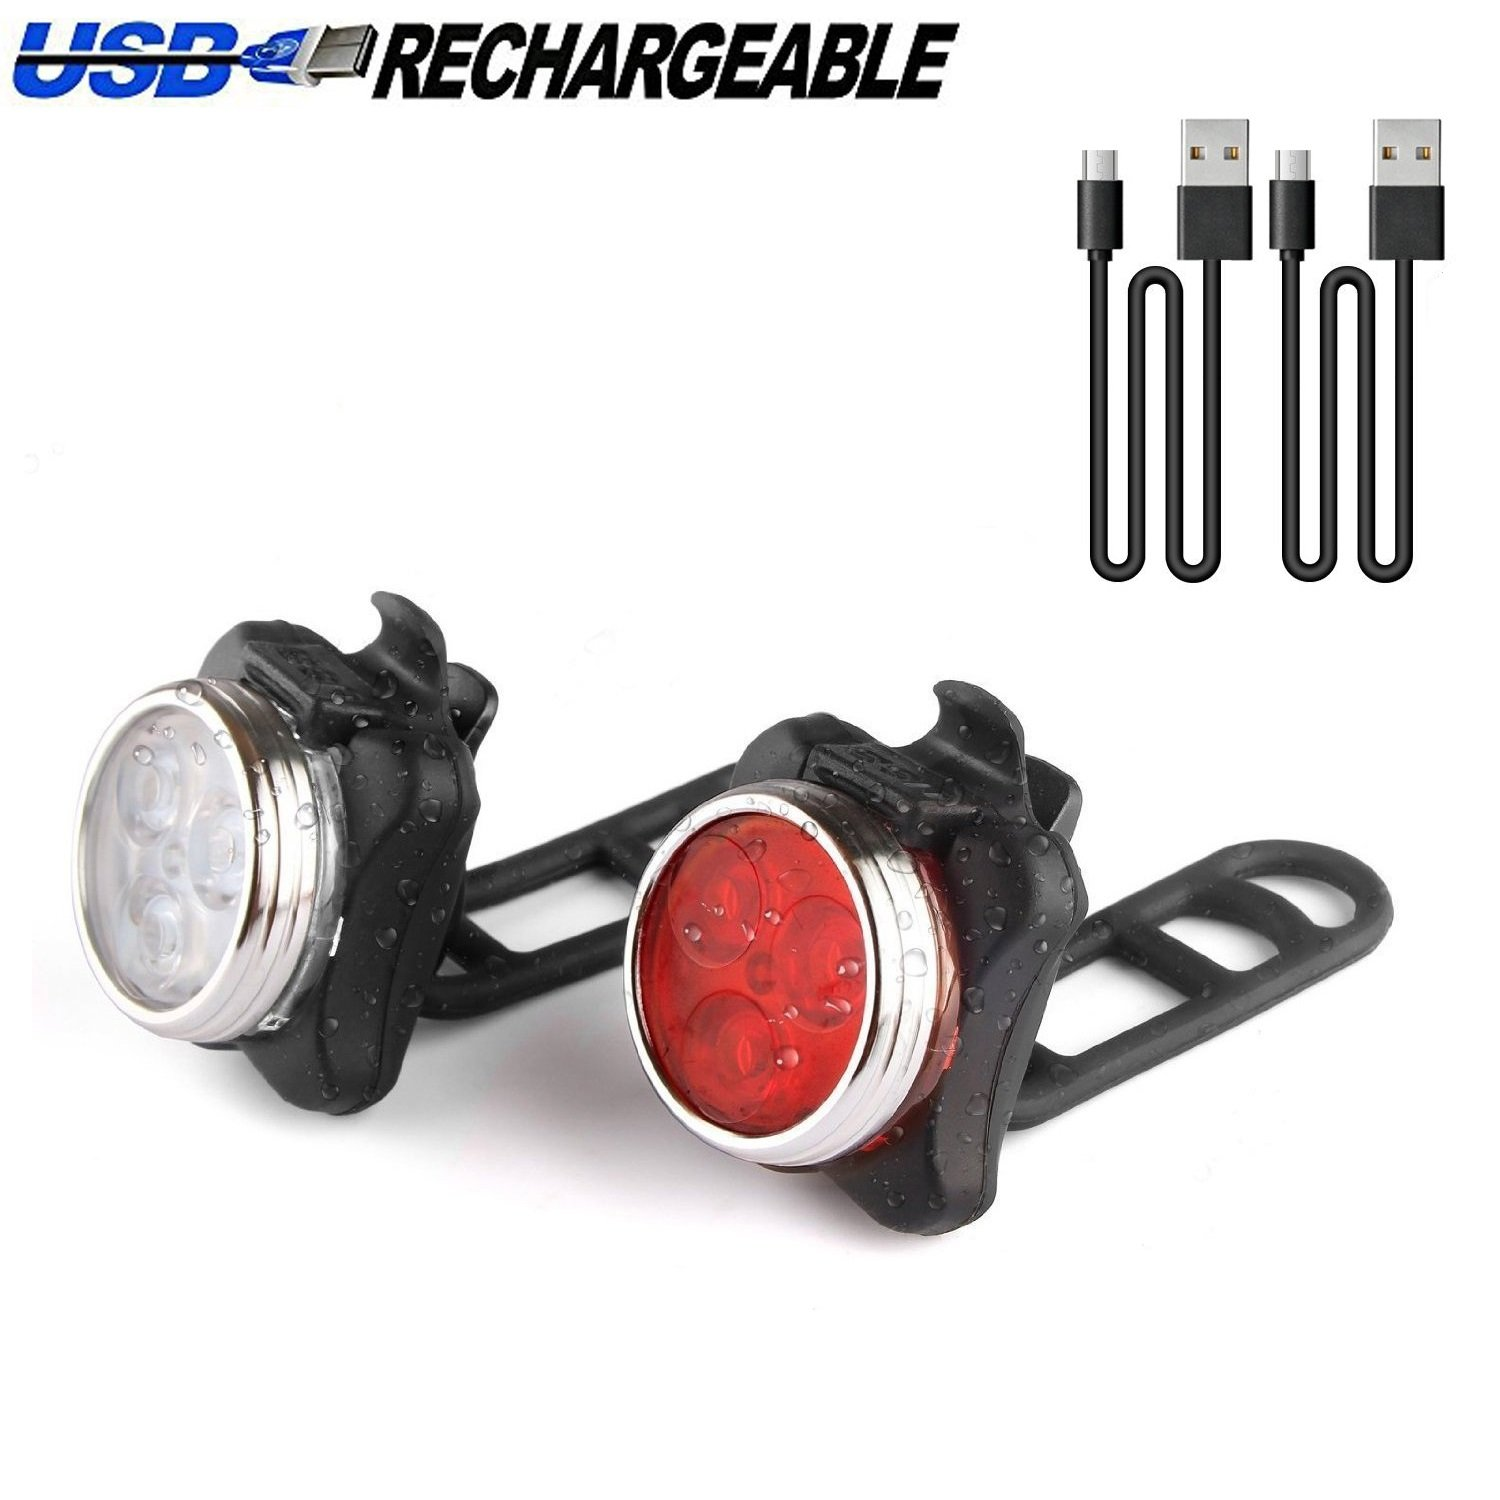 Bycicle Light, Cingk USB Rechargeable Bike Light Set Super Bright LED Front and Back Rear Bicycle Lights Easy To Install for Kids Men Women Road Cycling Safety Warning Light